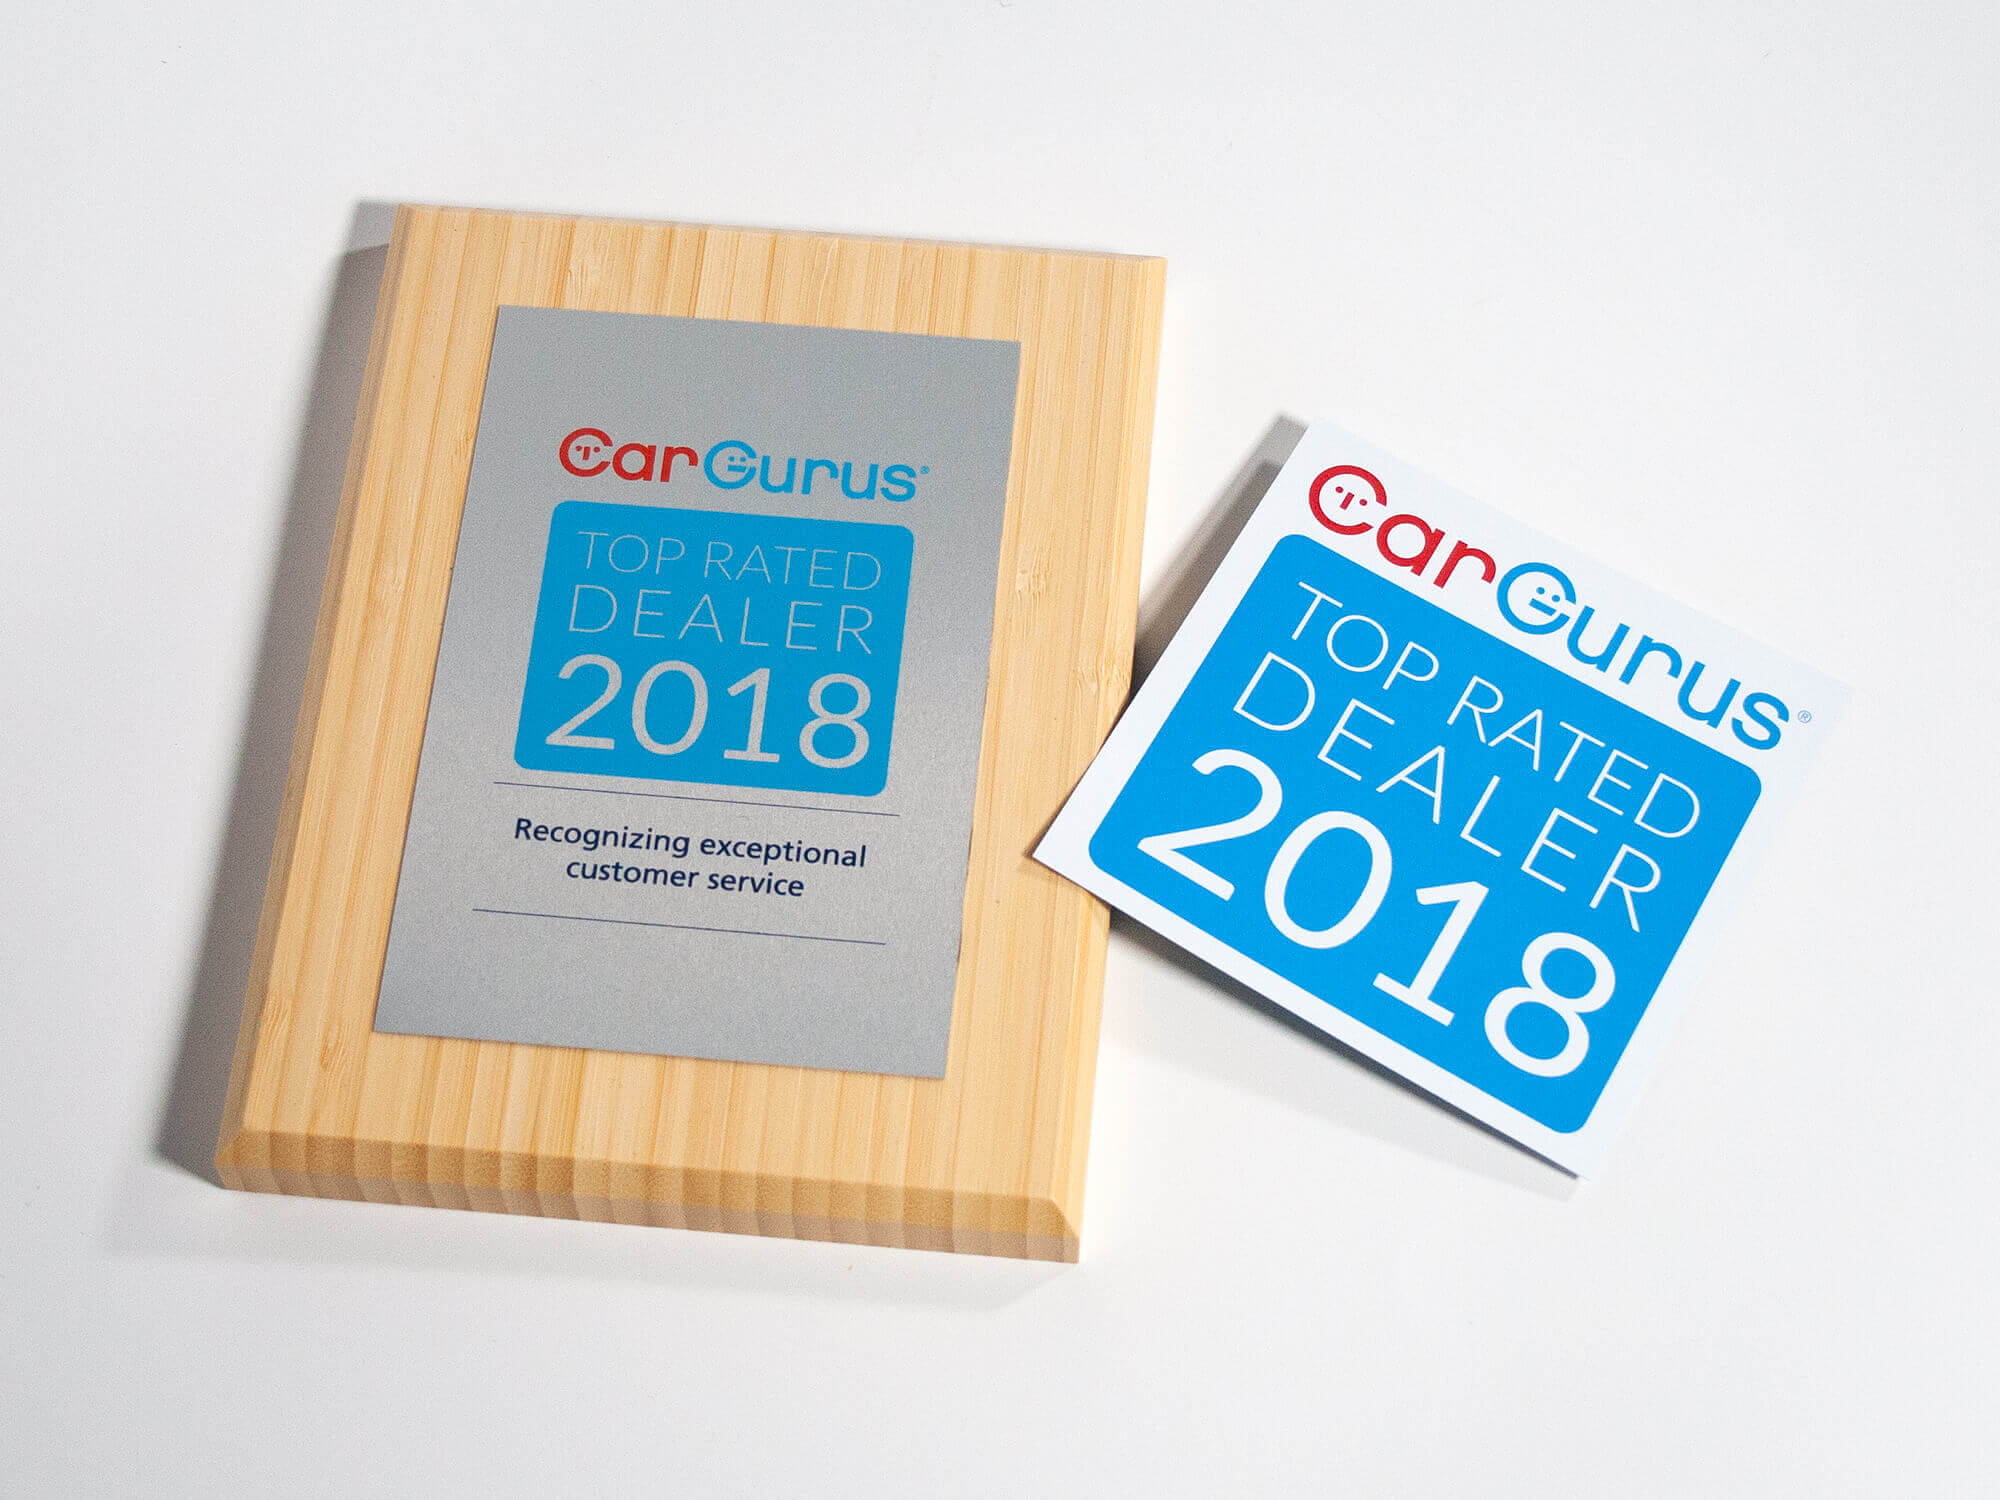 Car Gurus Dealer >> Cargurus Top Rated Dealer Award Kit 2018 Shawmut Communications Group